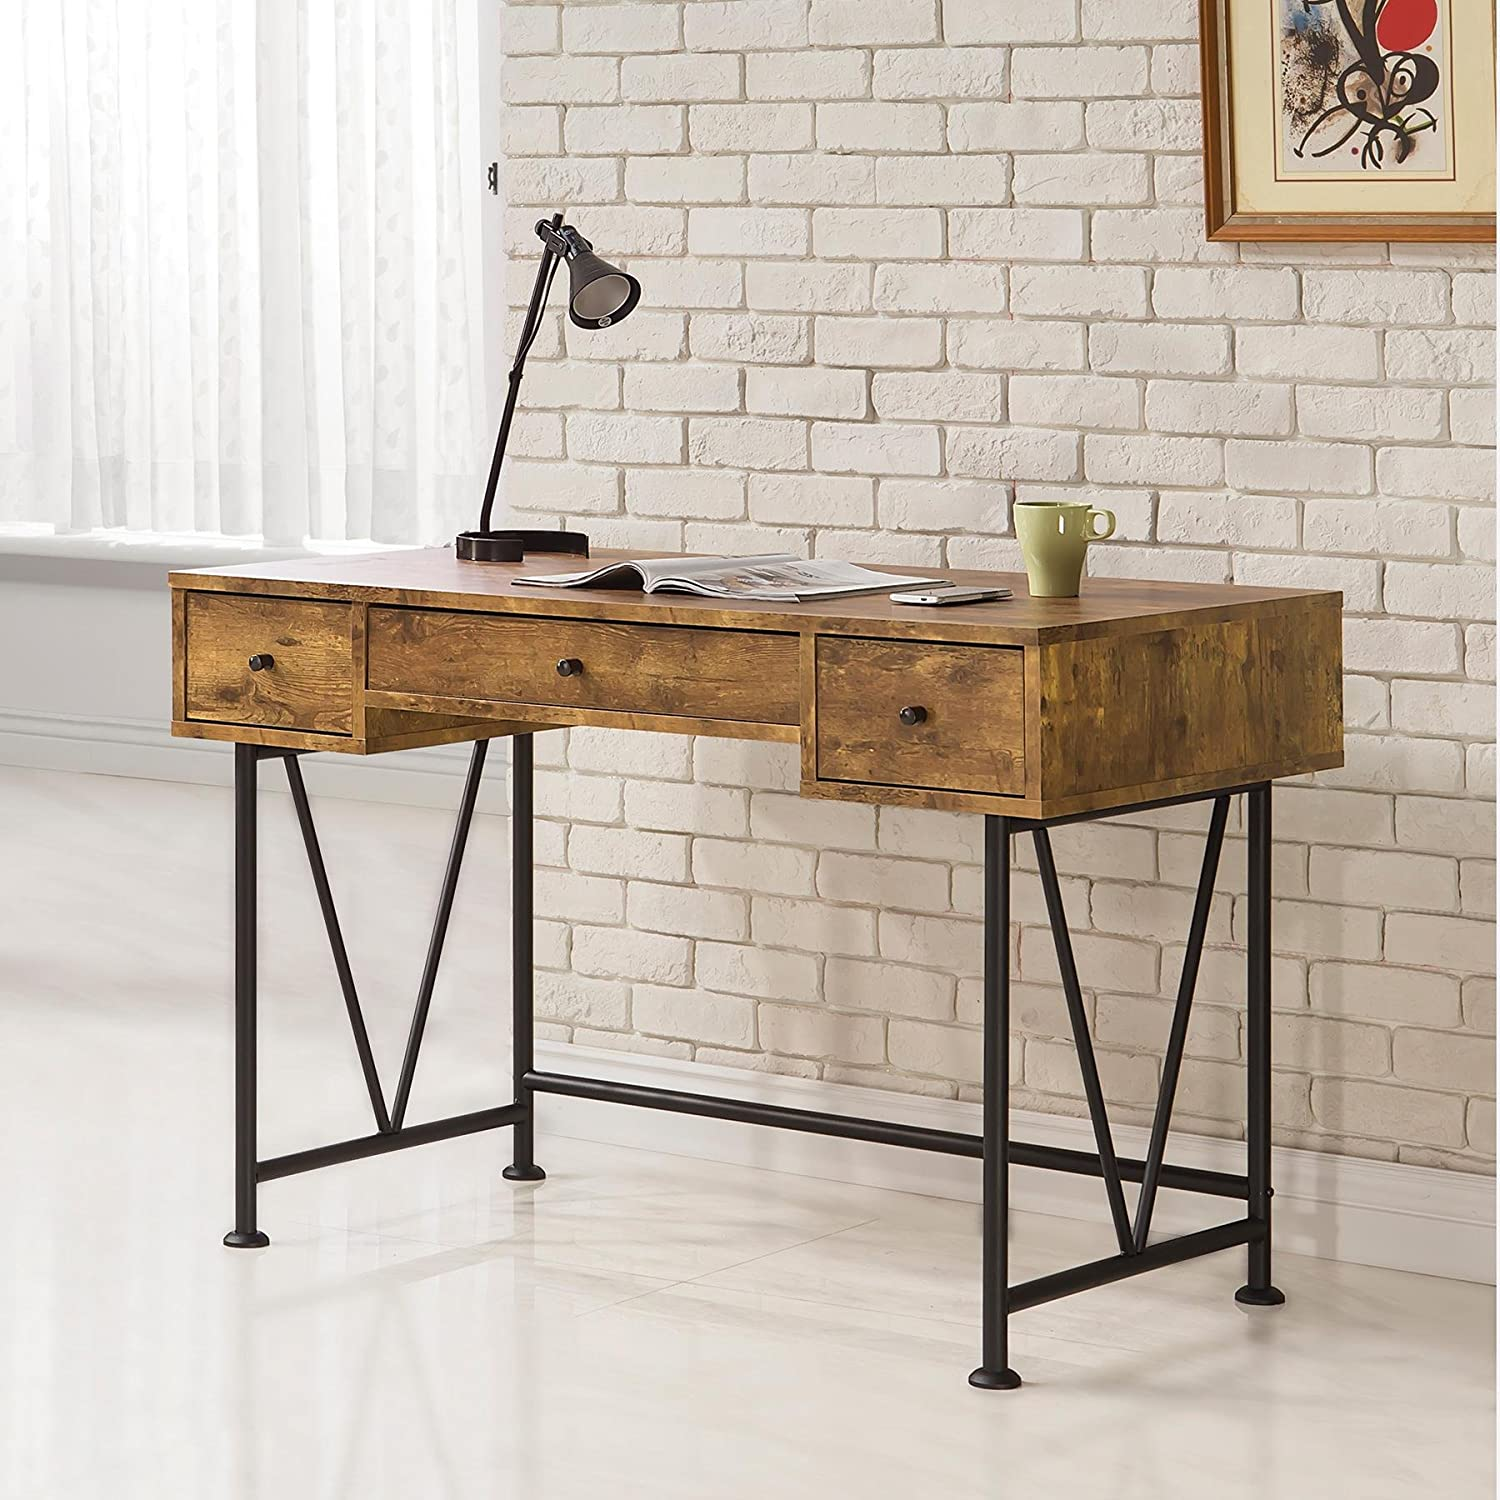 Amazon.com: Coaster Home Furnishings Analiese Modern Rustic Industrial  Three Drawer Writing Desk   Antique Nutmeg: Kitchen U0026 Dining